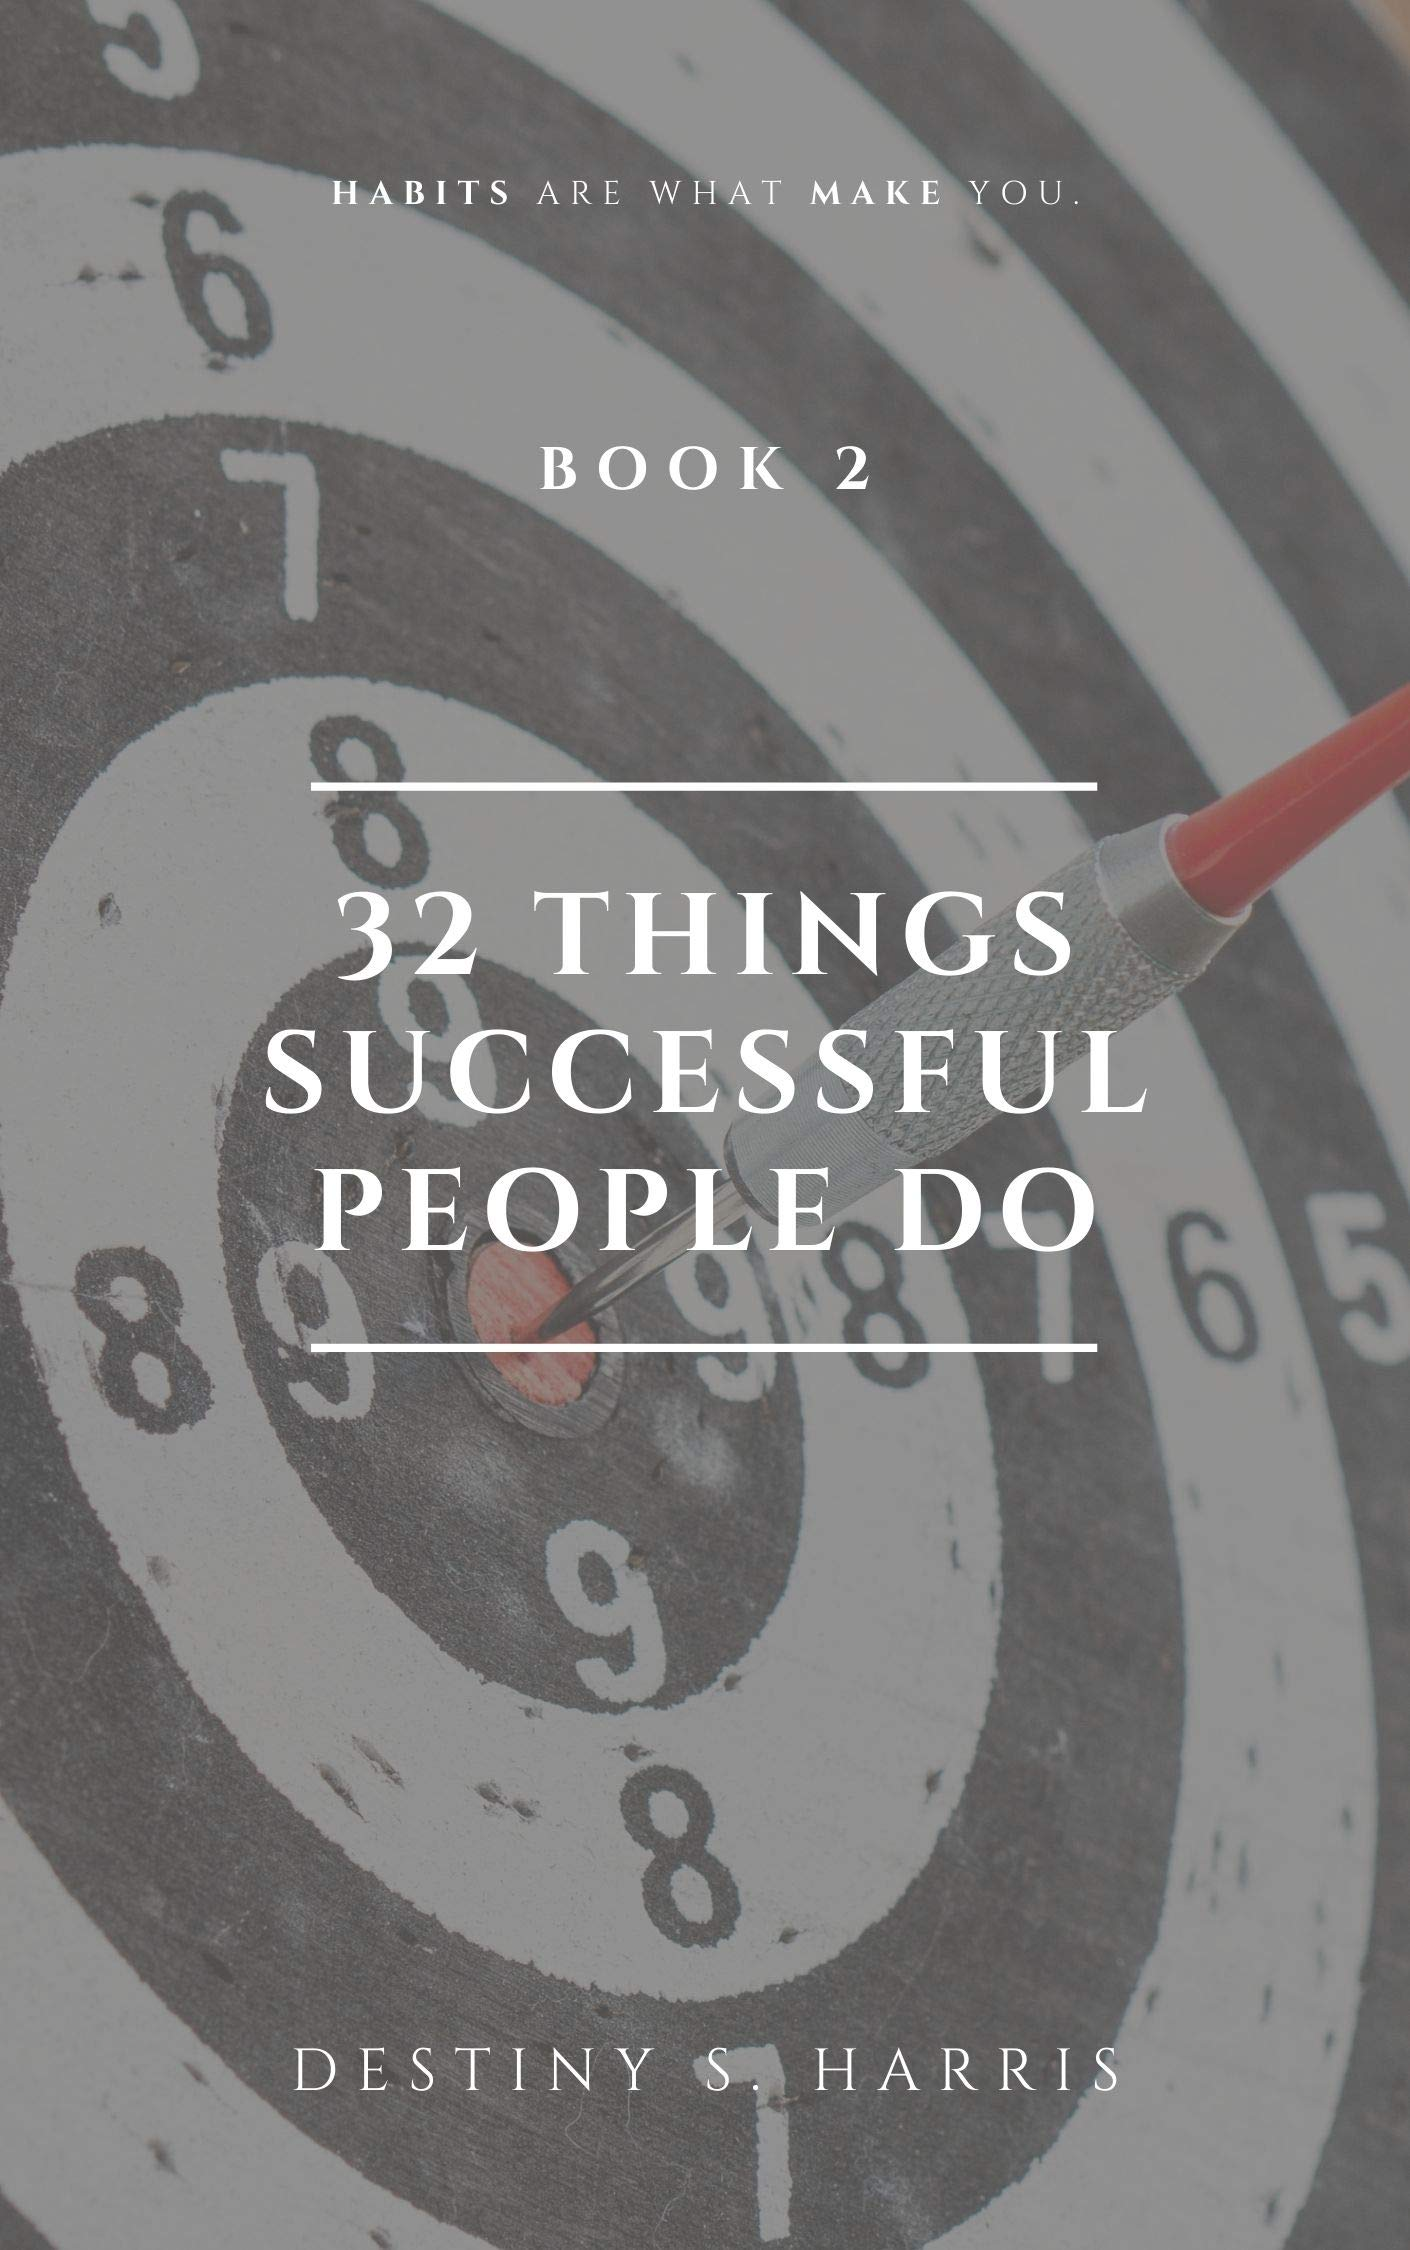 32 Things Successful People Do: Book 2 (Successful People Do This Series)